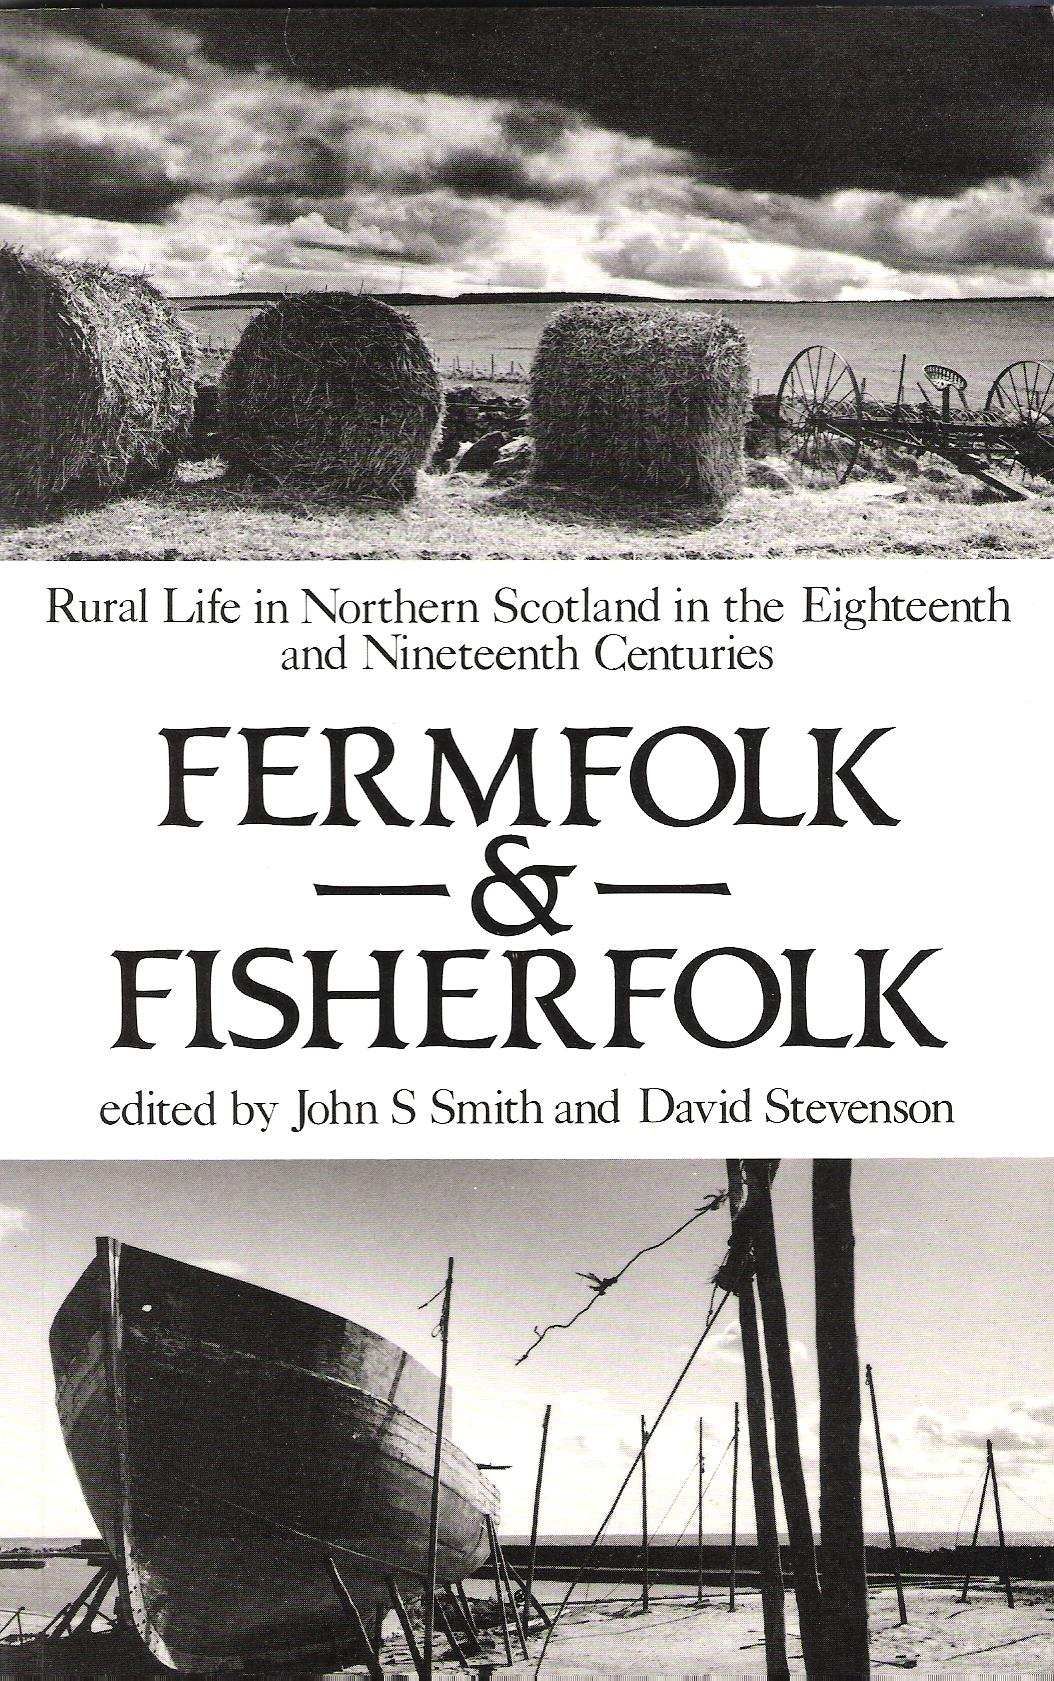 Image for Fermfolk and Fisherfolk: Rural Life in Northern Scotland in the Eighteenth and Nineteenth Centuries.